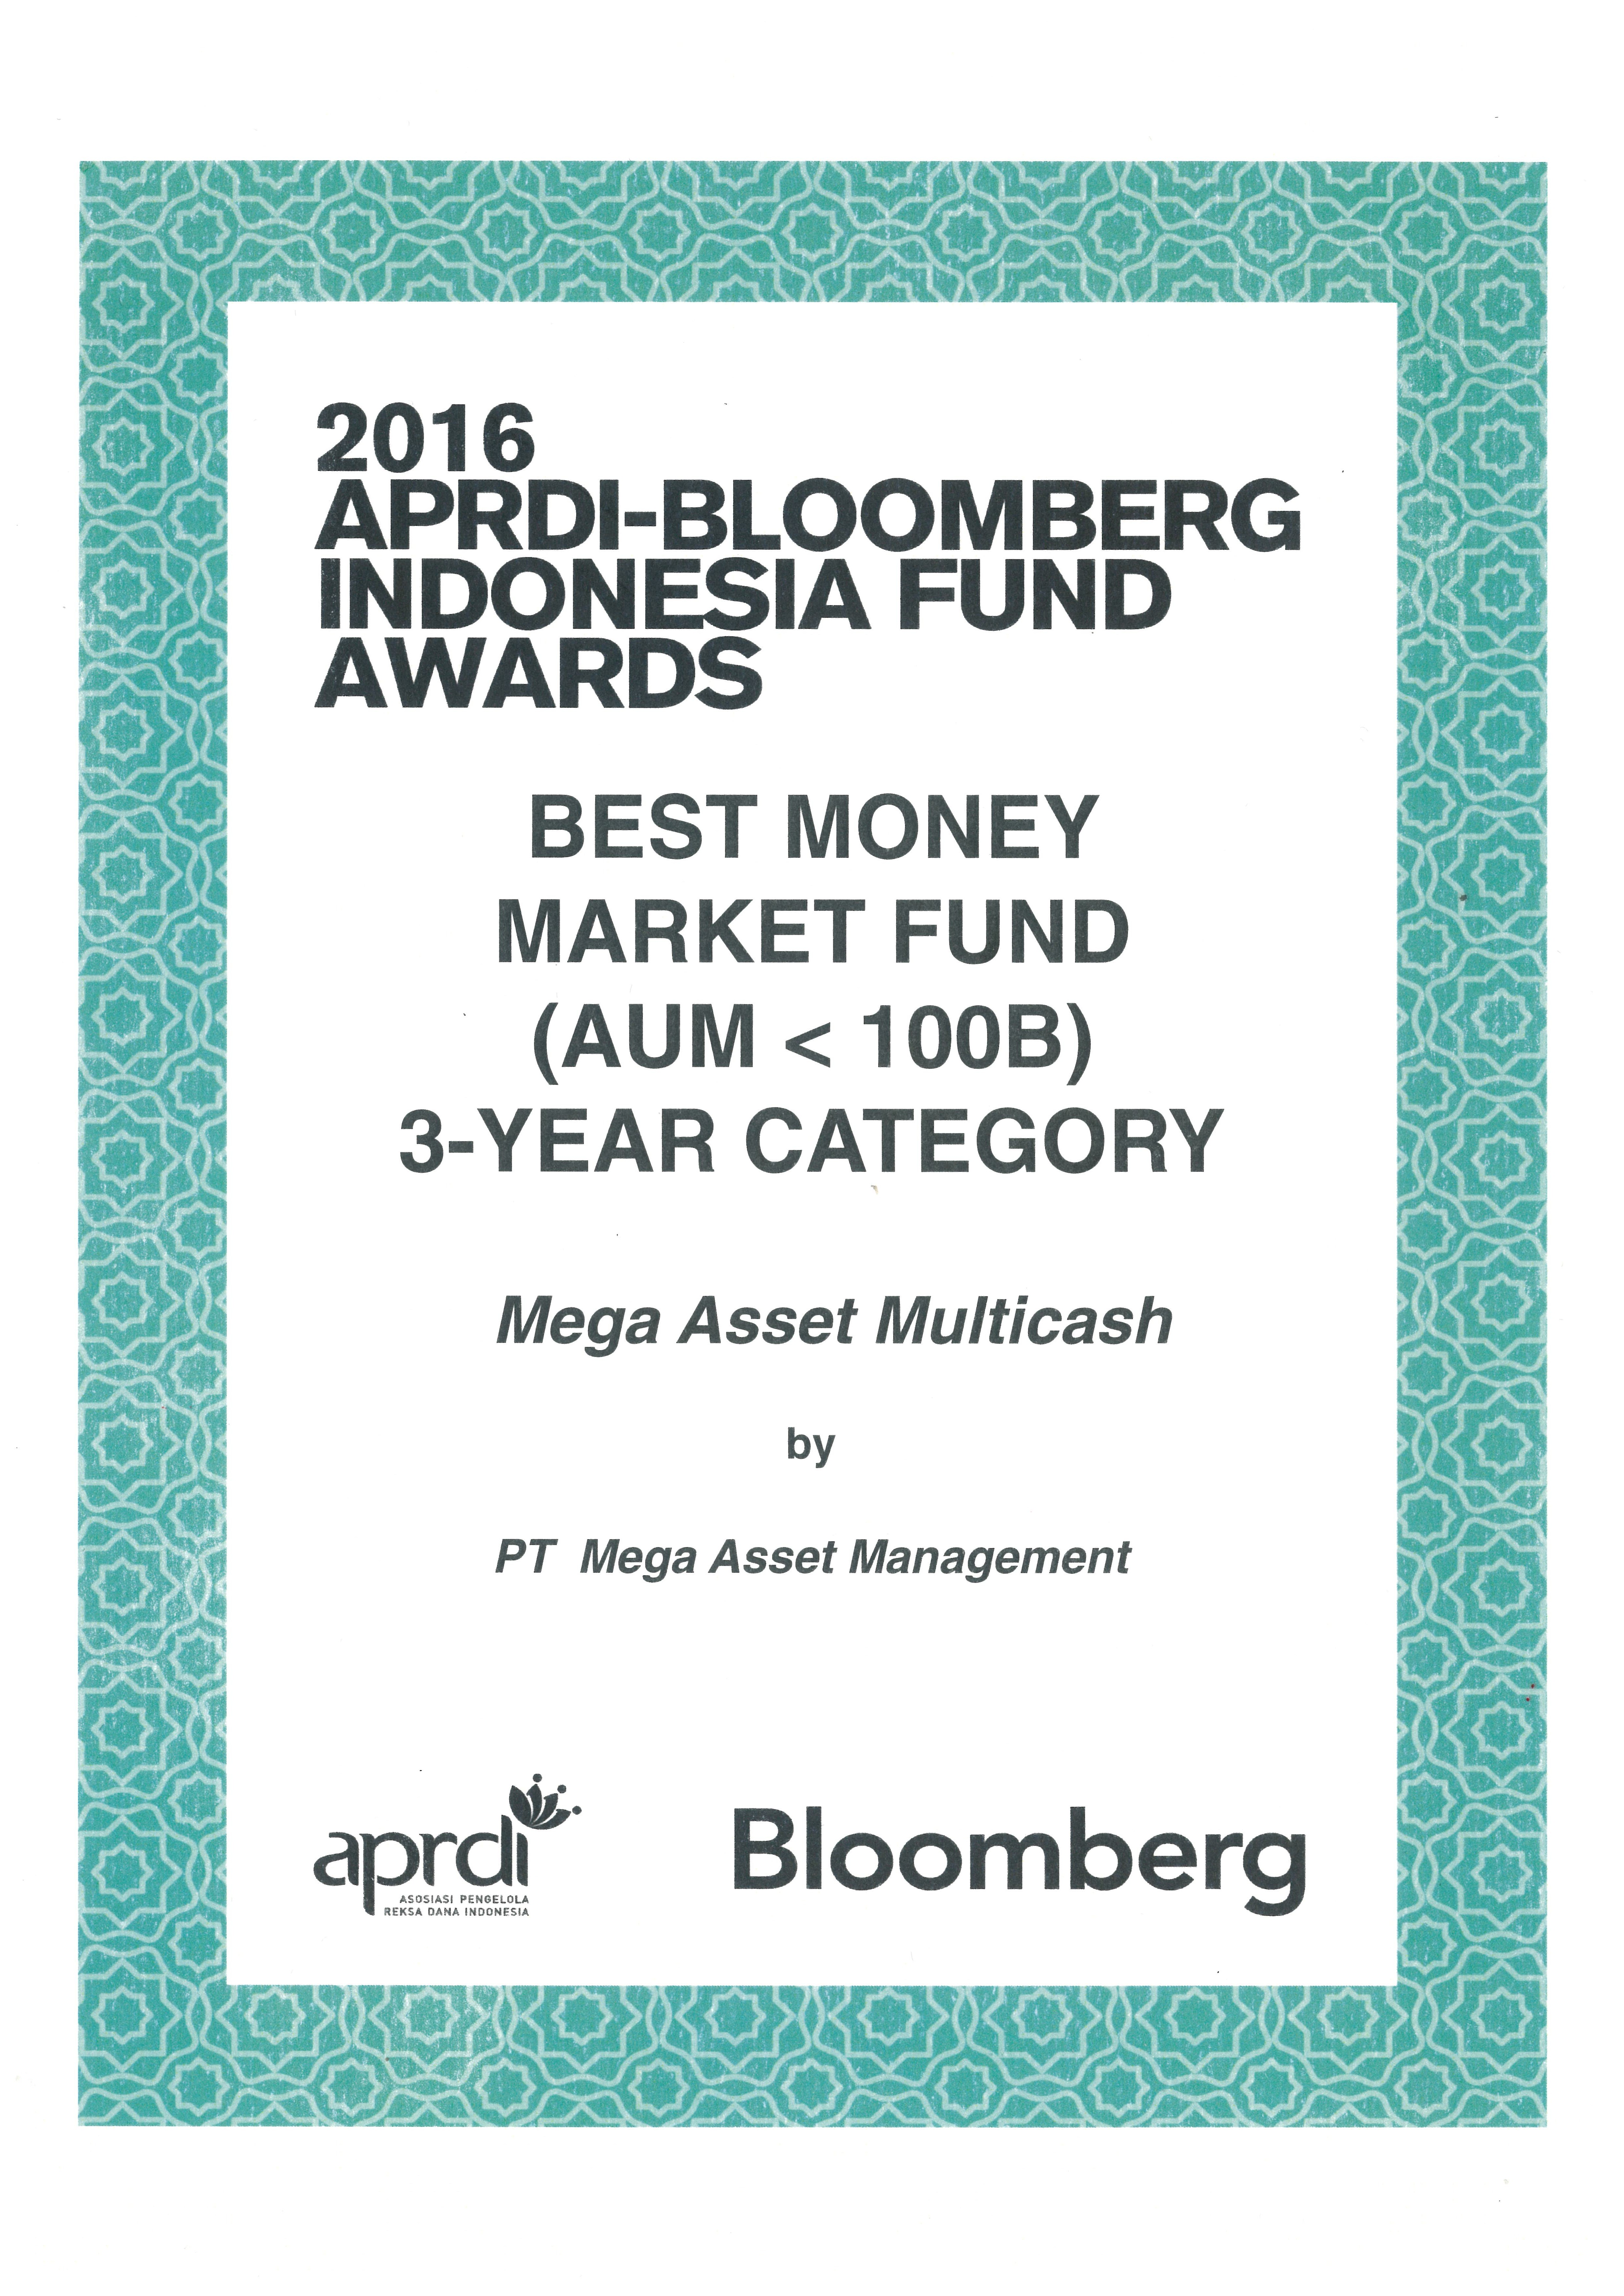 Best Money Market Fund(AUM<100B) 3 Year Award